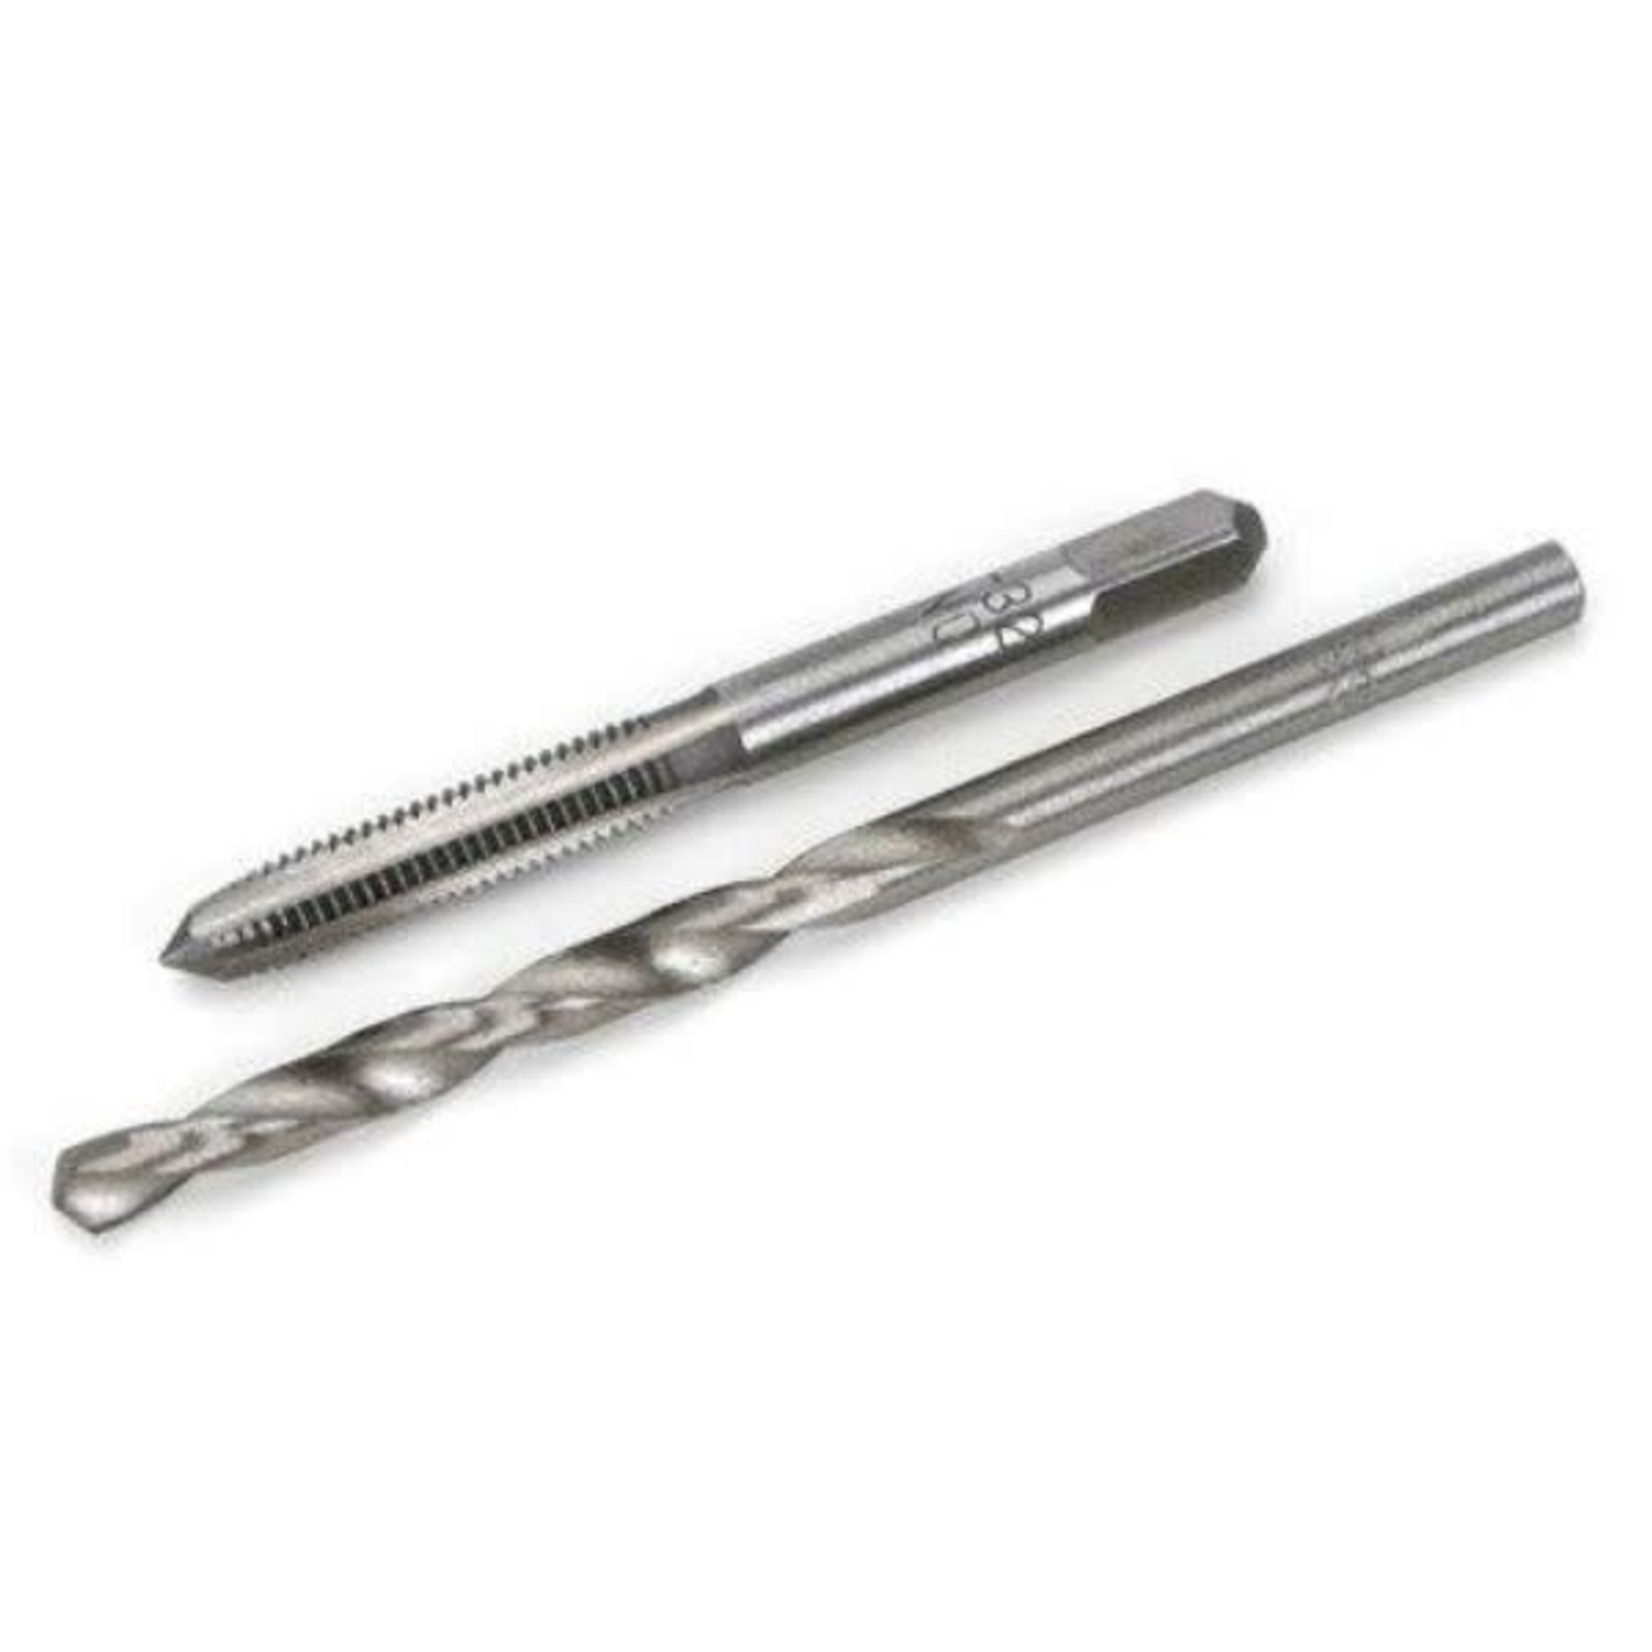 Dubro DUB361 Dubro 4-40 Tap And Drill Set